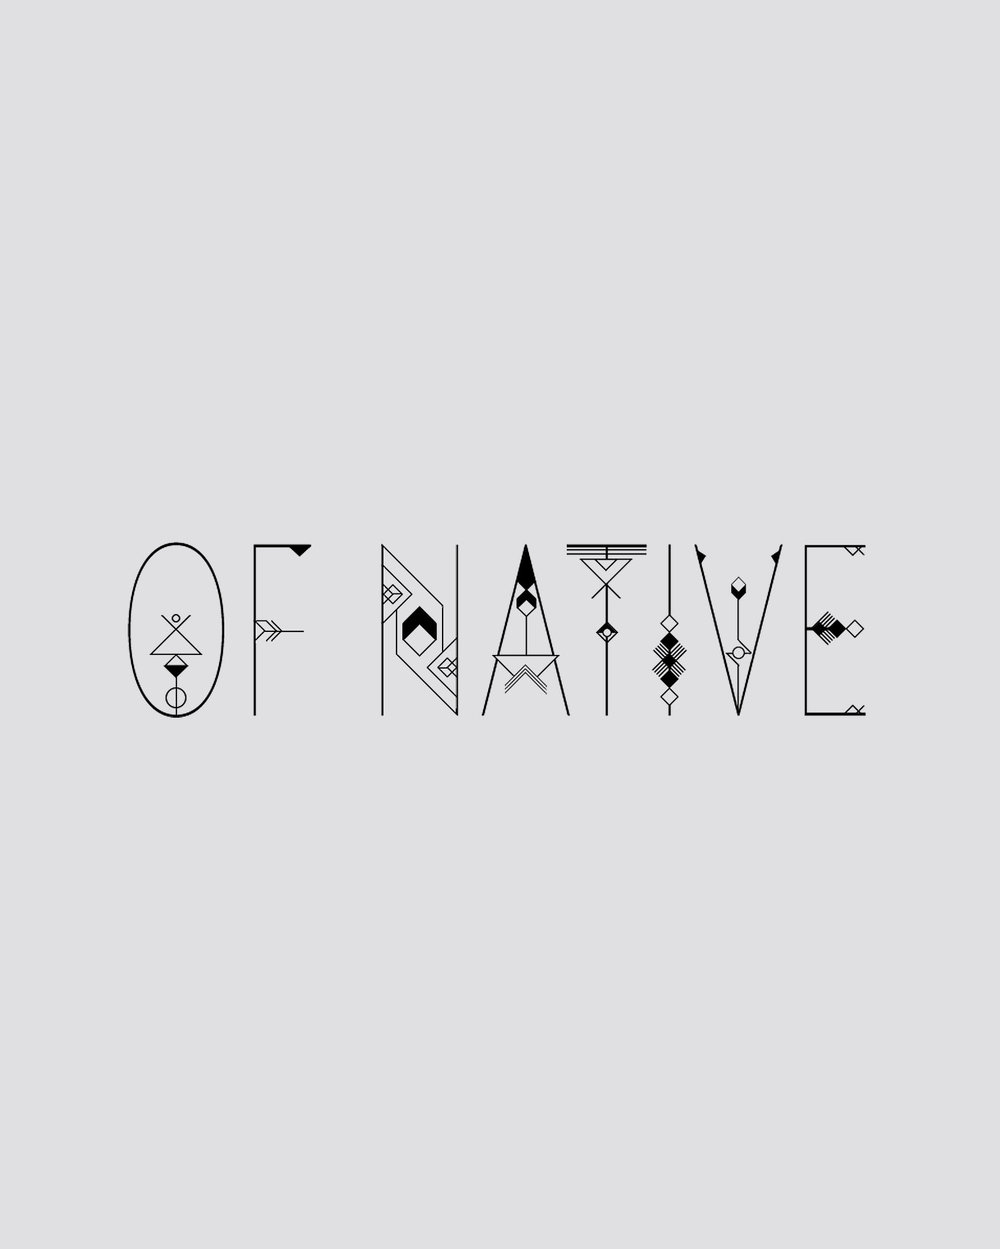 Of Native brand identity | Reux Design Co.